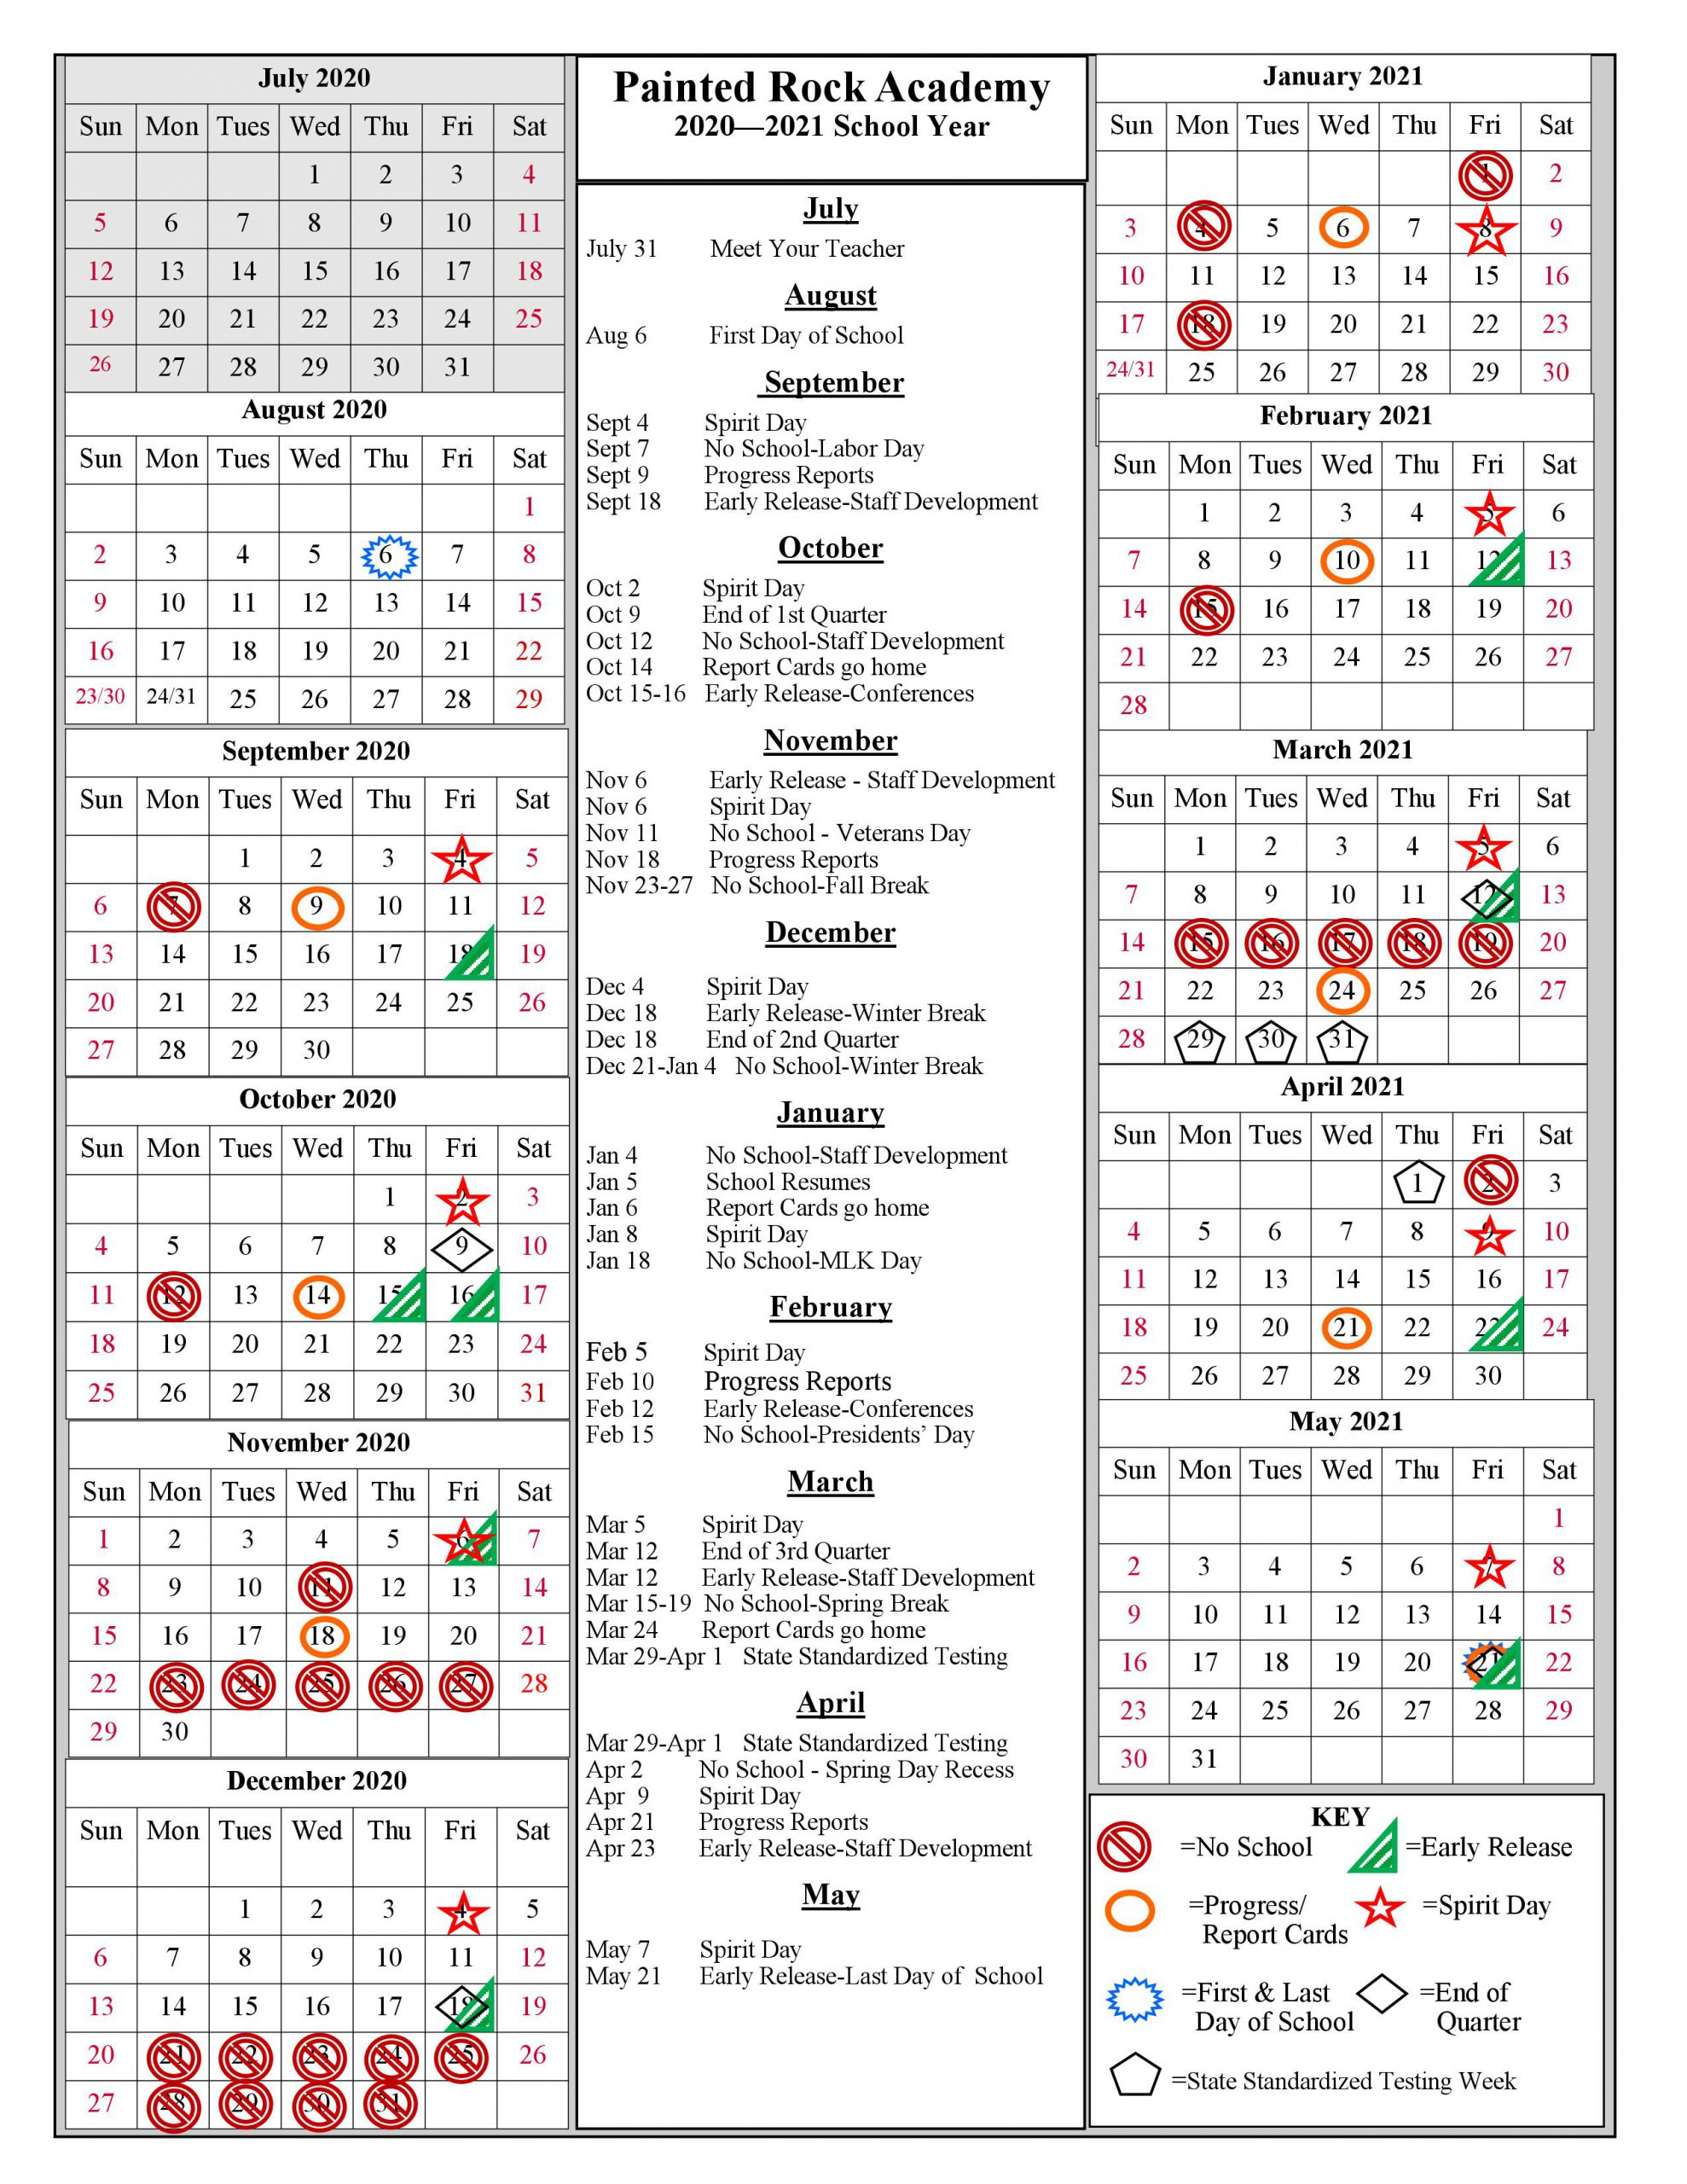 School Year Calendar 2020 2021 | Painted Rock Academy With Gcu Academic Calendar 2021 20